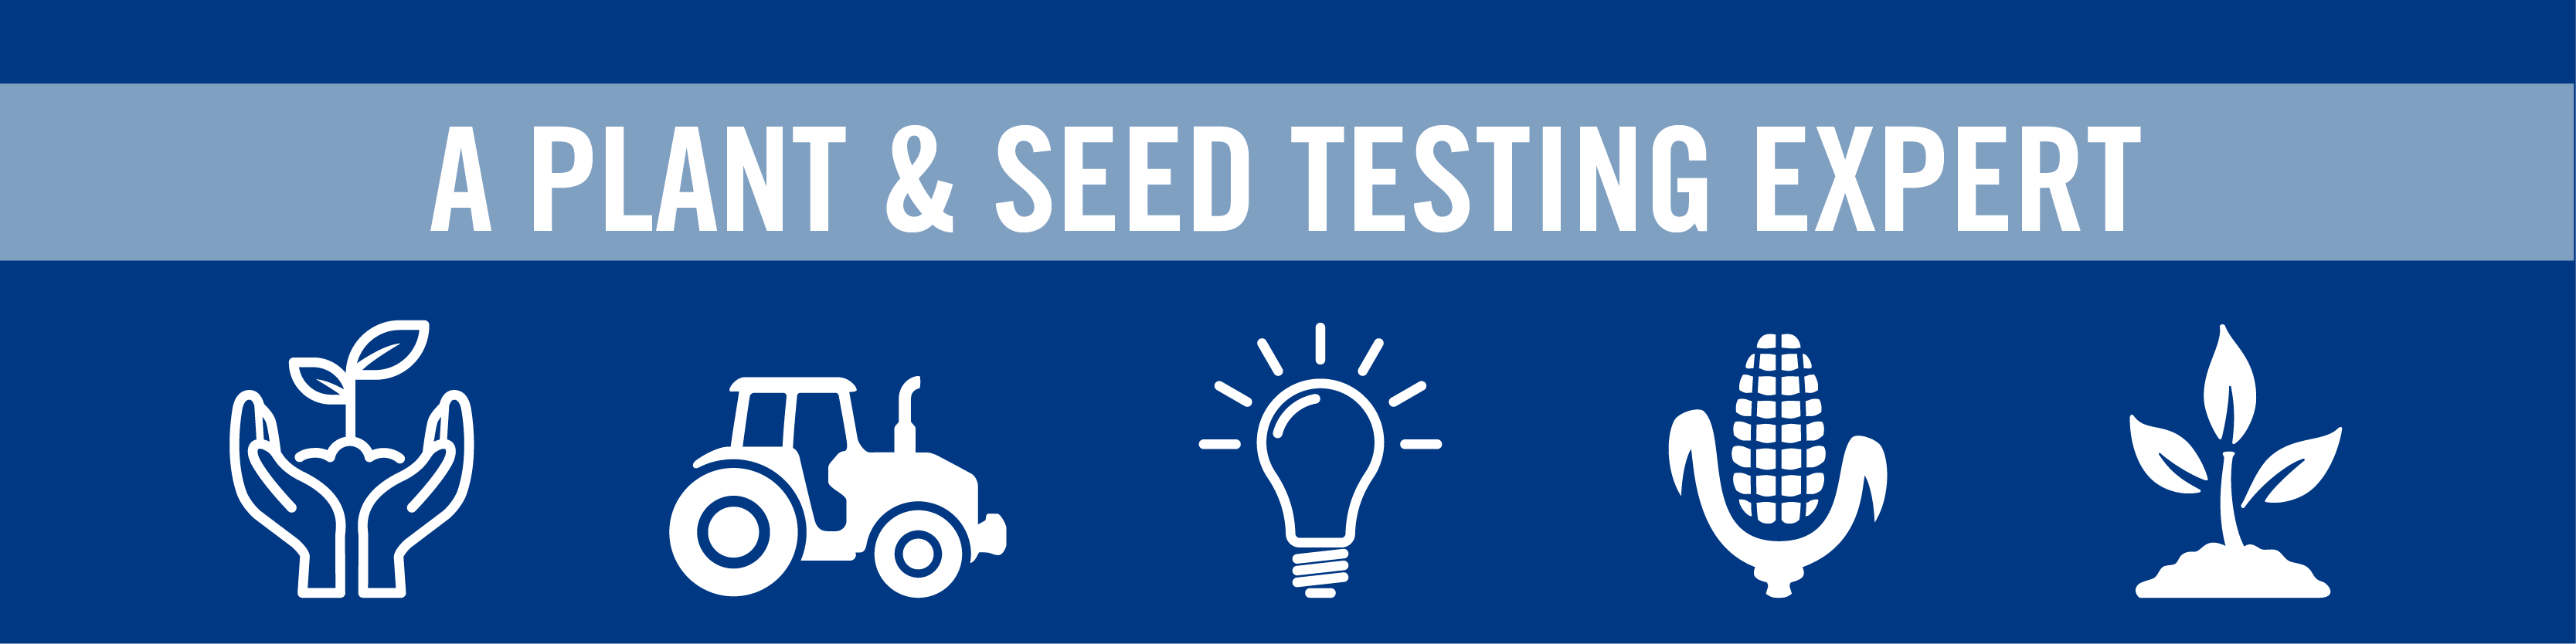 A Plant & Seed Testing Expert